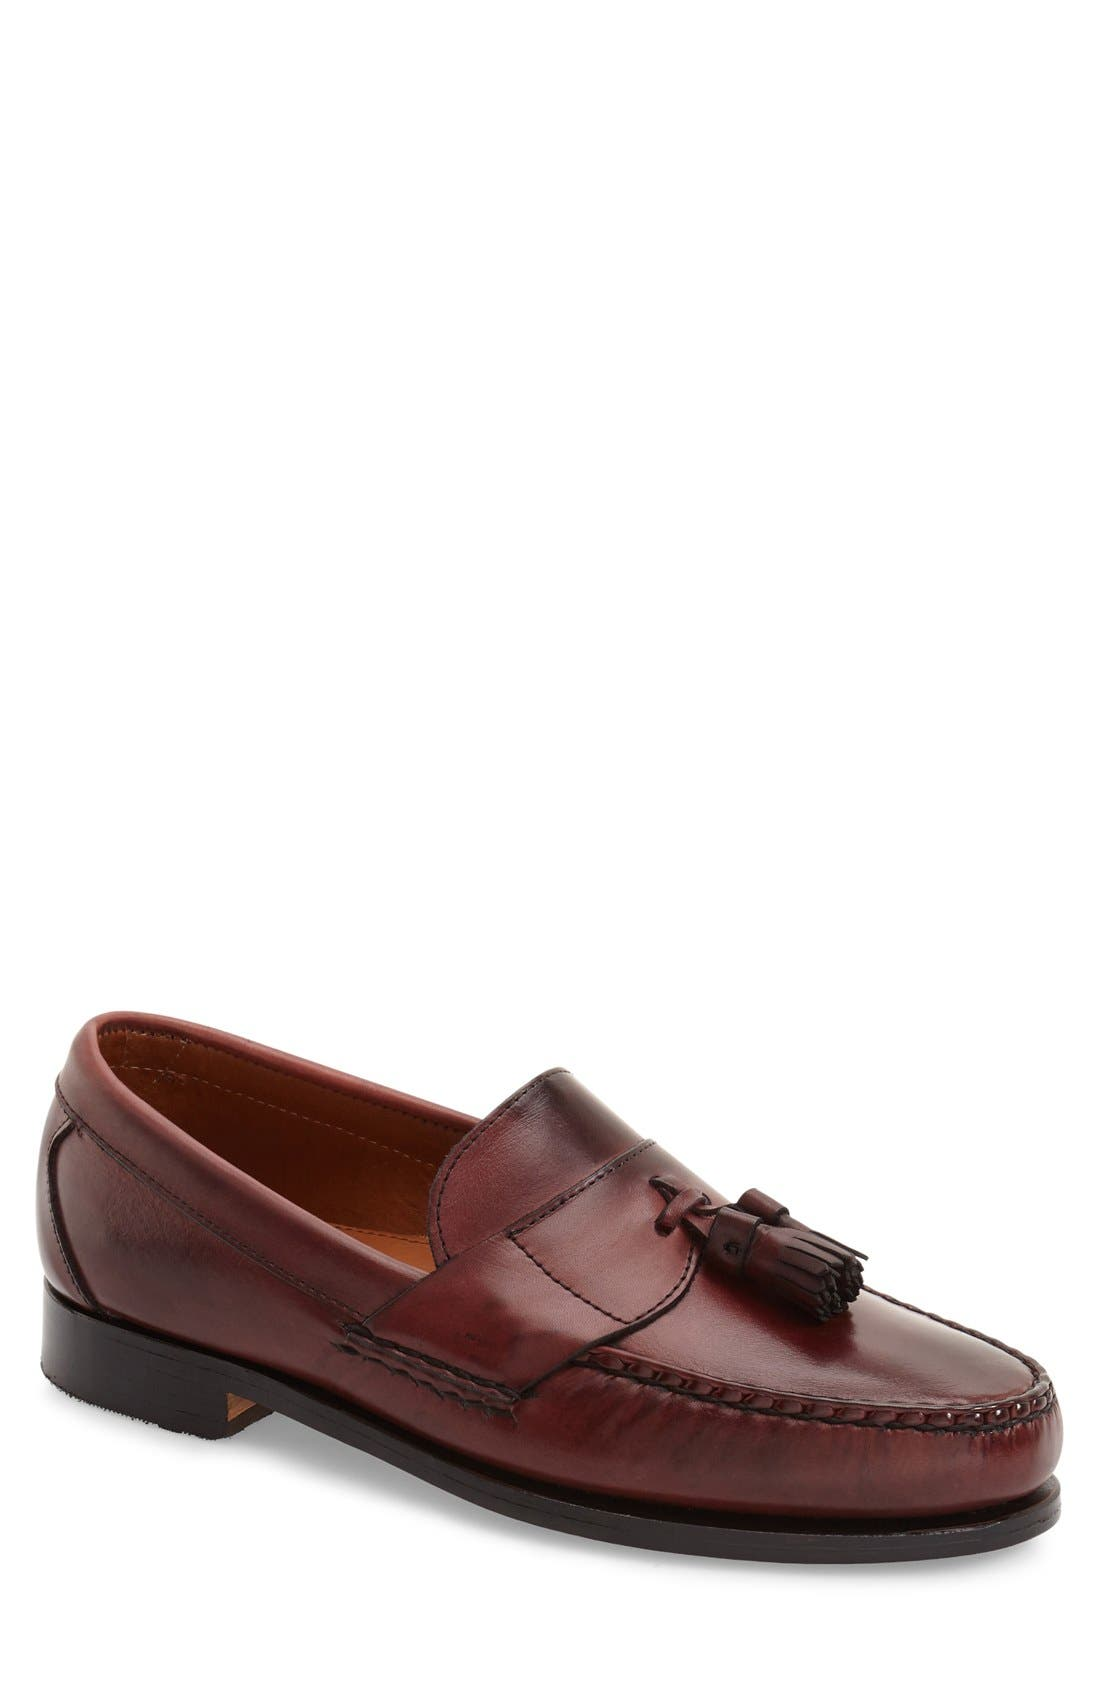 ALLEN EDMONDS Tassel Penny Loafer